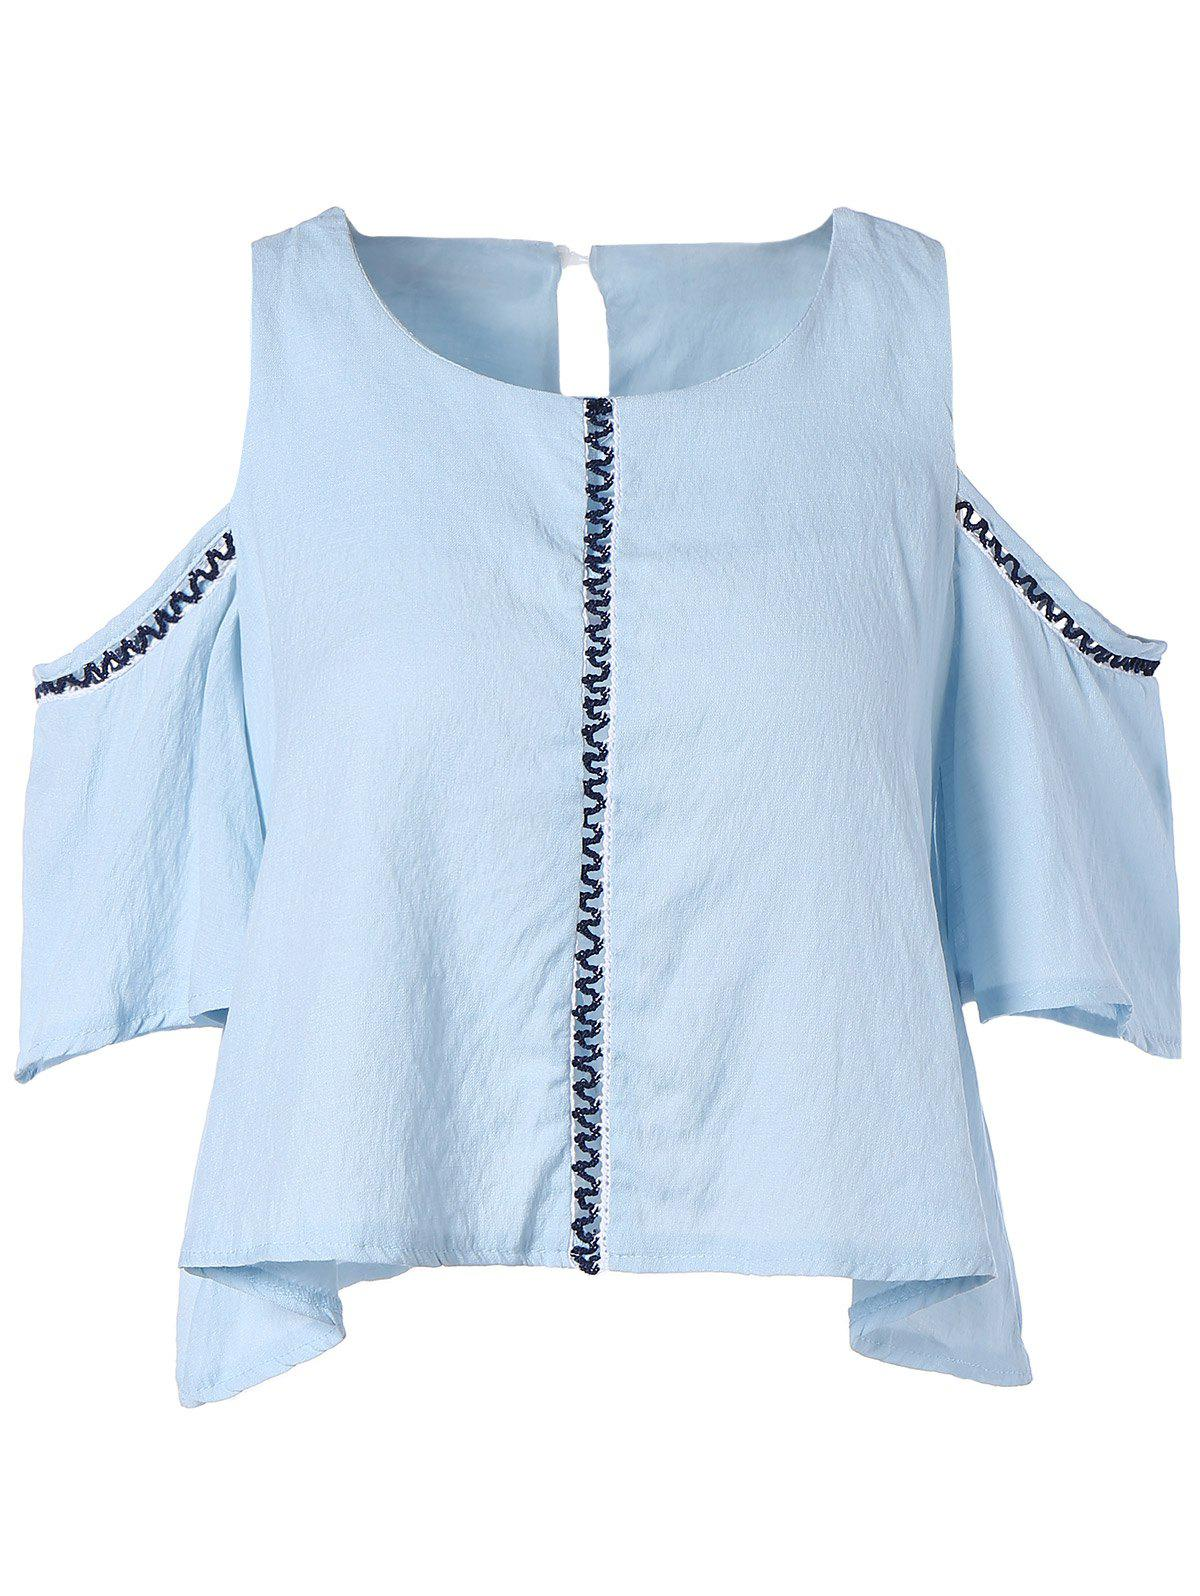 Cut Out Candy Color Blouse - LIGHT BLUE ONE SIZE